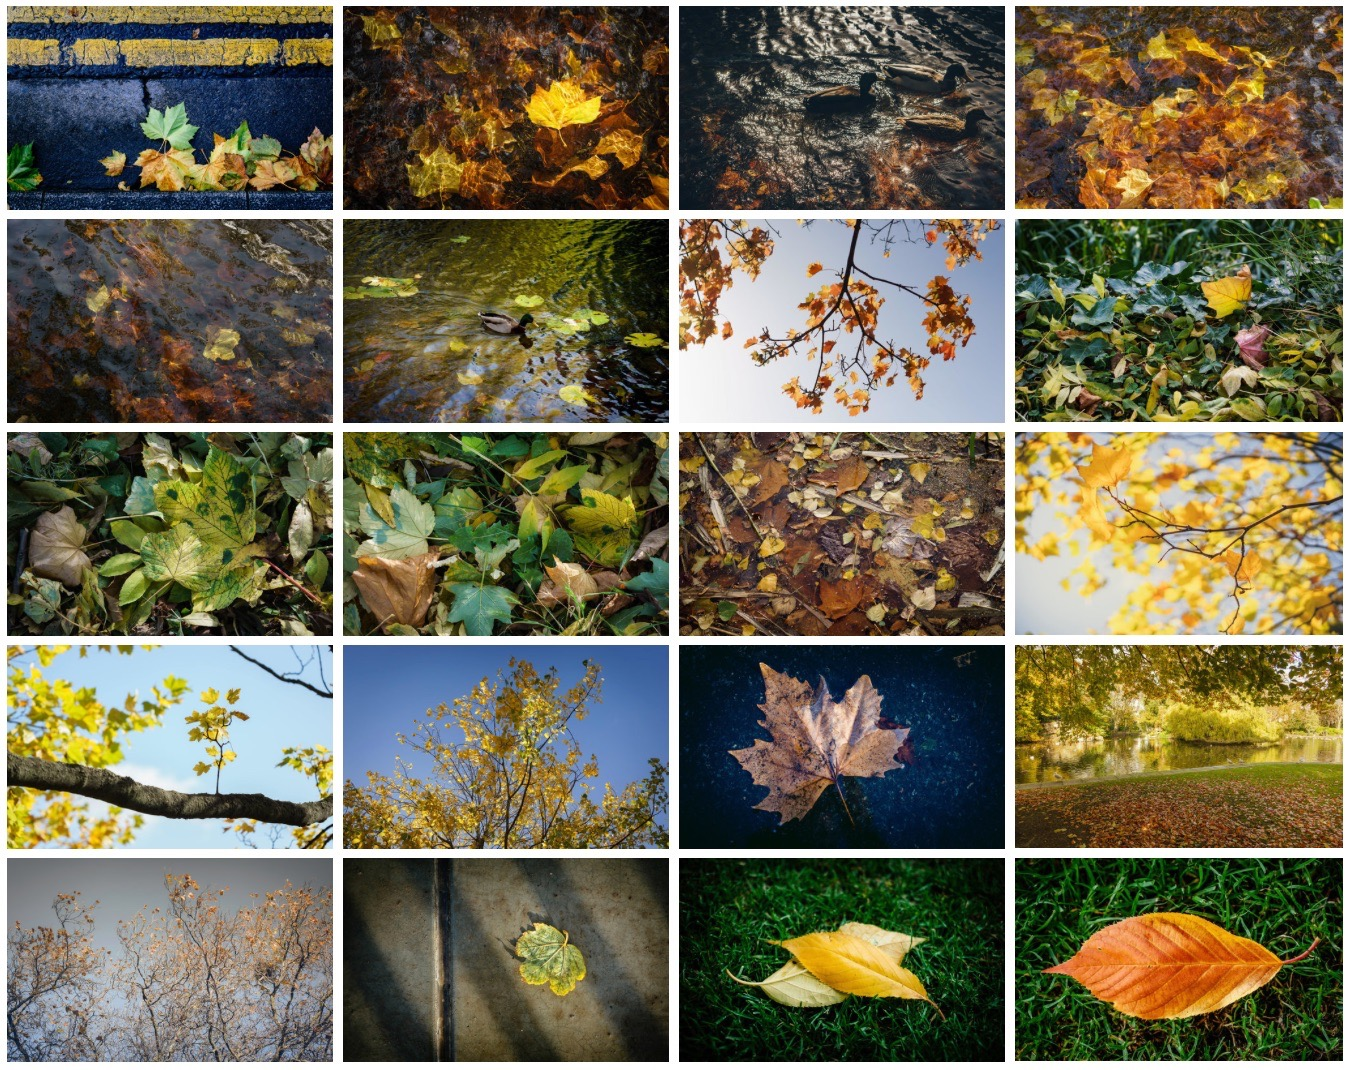 Autumn Wallpaper Pack by Thomas Fitzgerald Photography